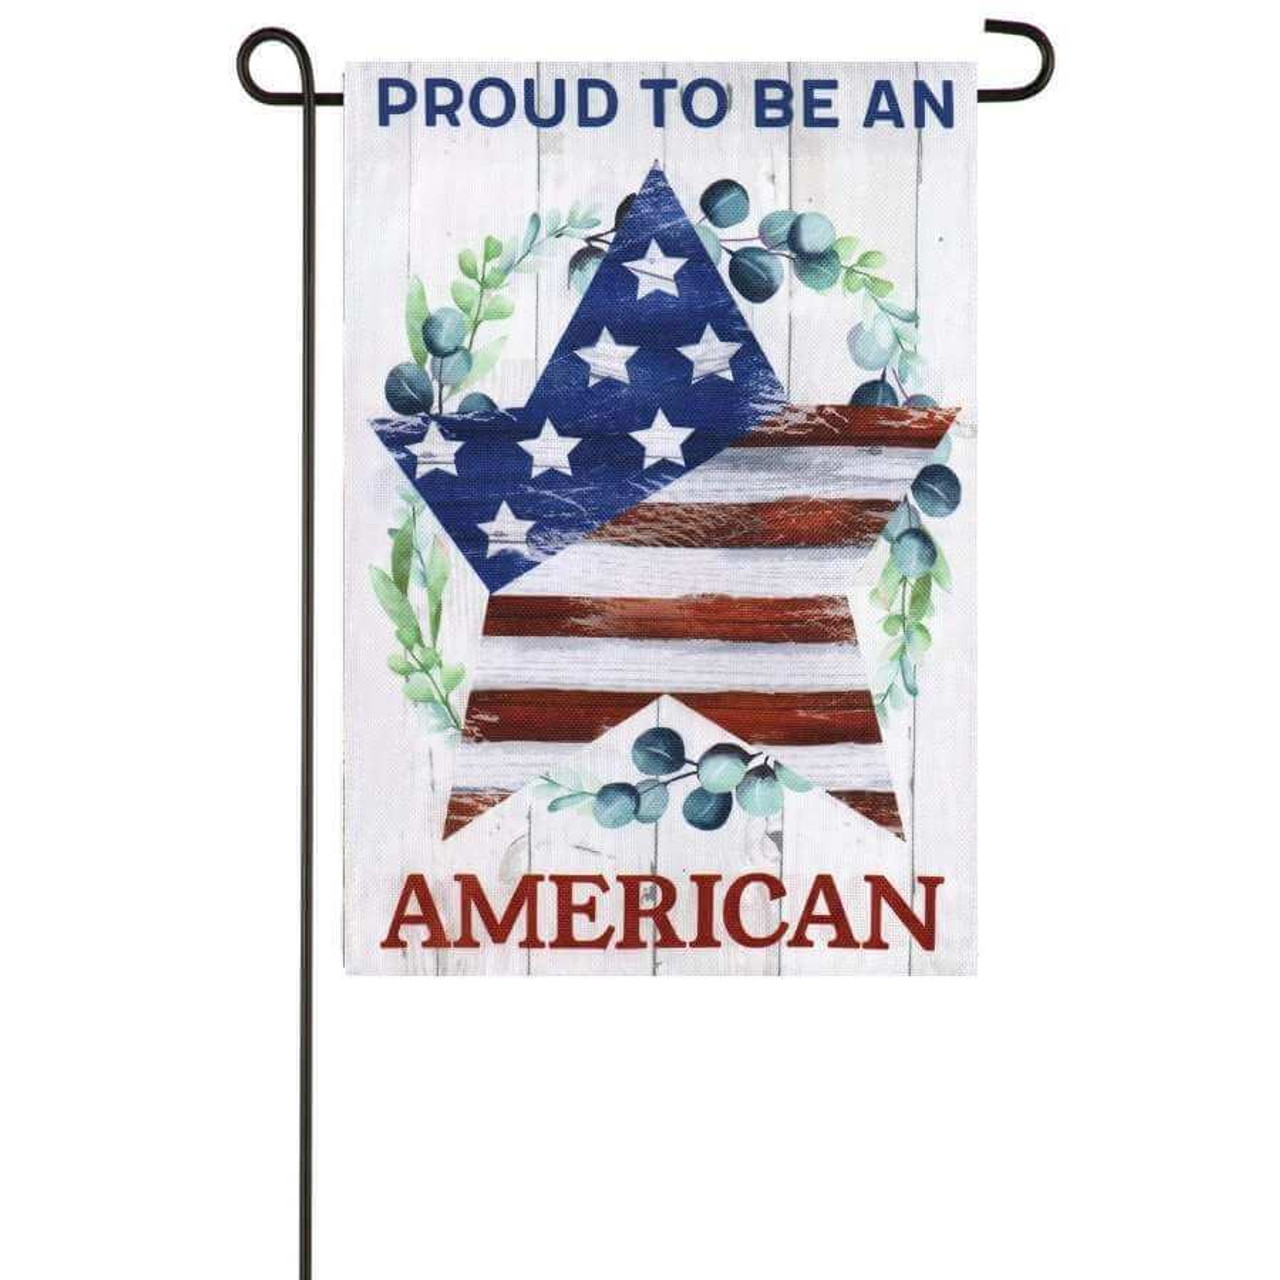 """A patriotic garden flag. The middle has a star filled with the stars and stripes from the American flag. Around the star is a wreath of leaves and blueberries. The background is a white faux wood with """"Proud to be an"""" written on top in blue and """"American"""" written in red on the bottom."""